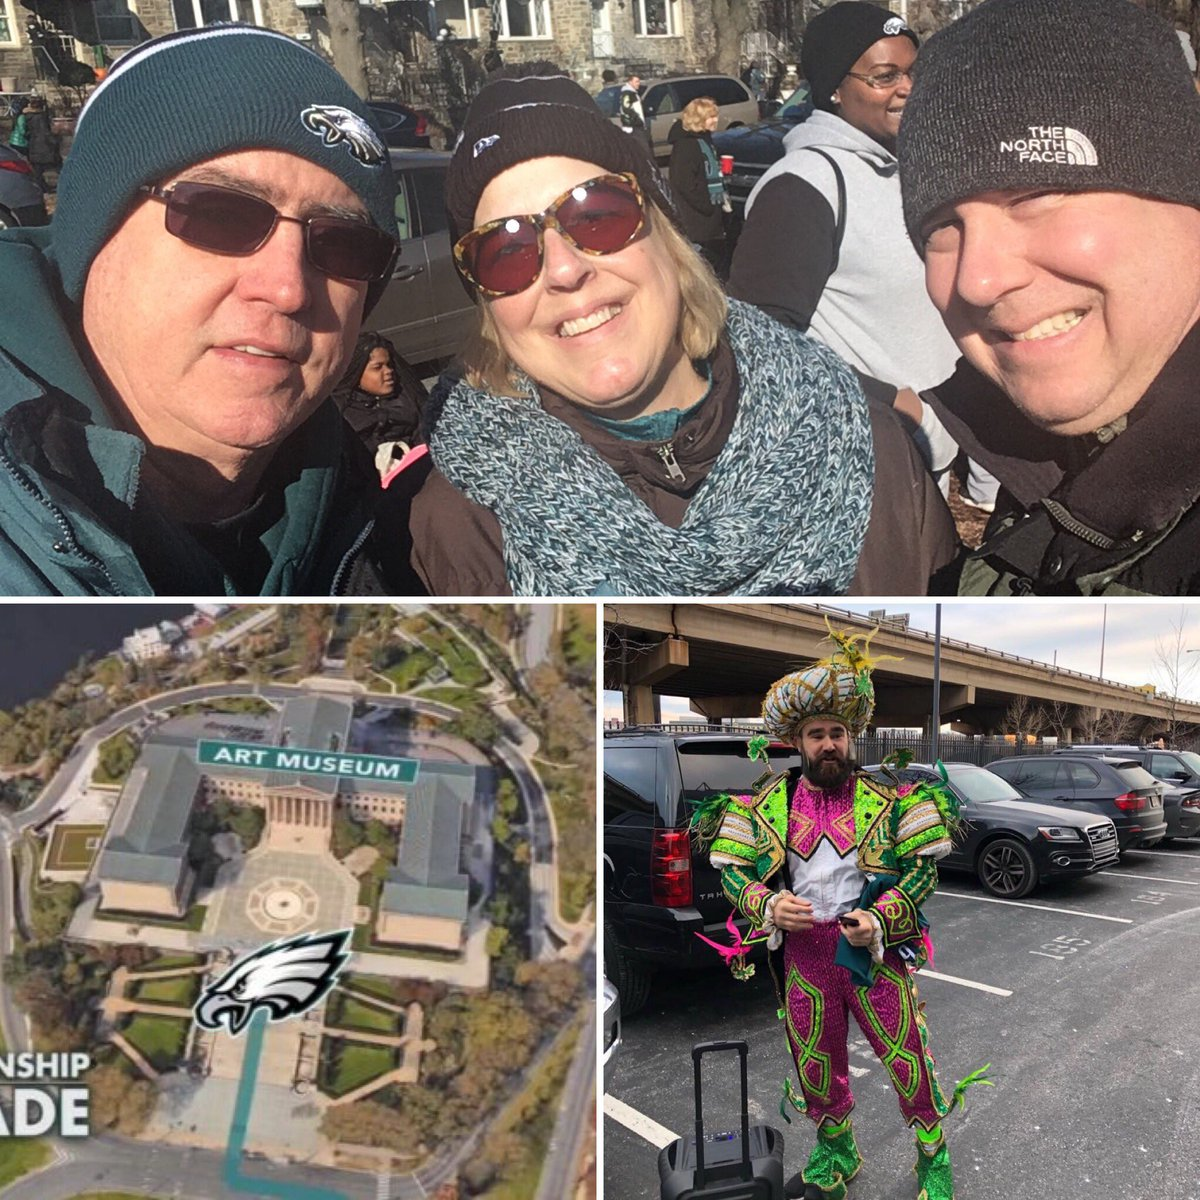 One year ago today...Epic!!! #FlyEaglesFly